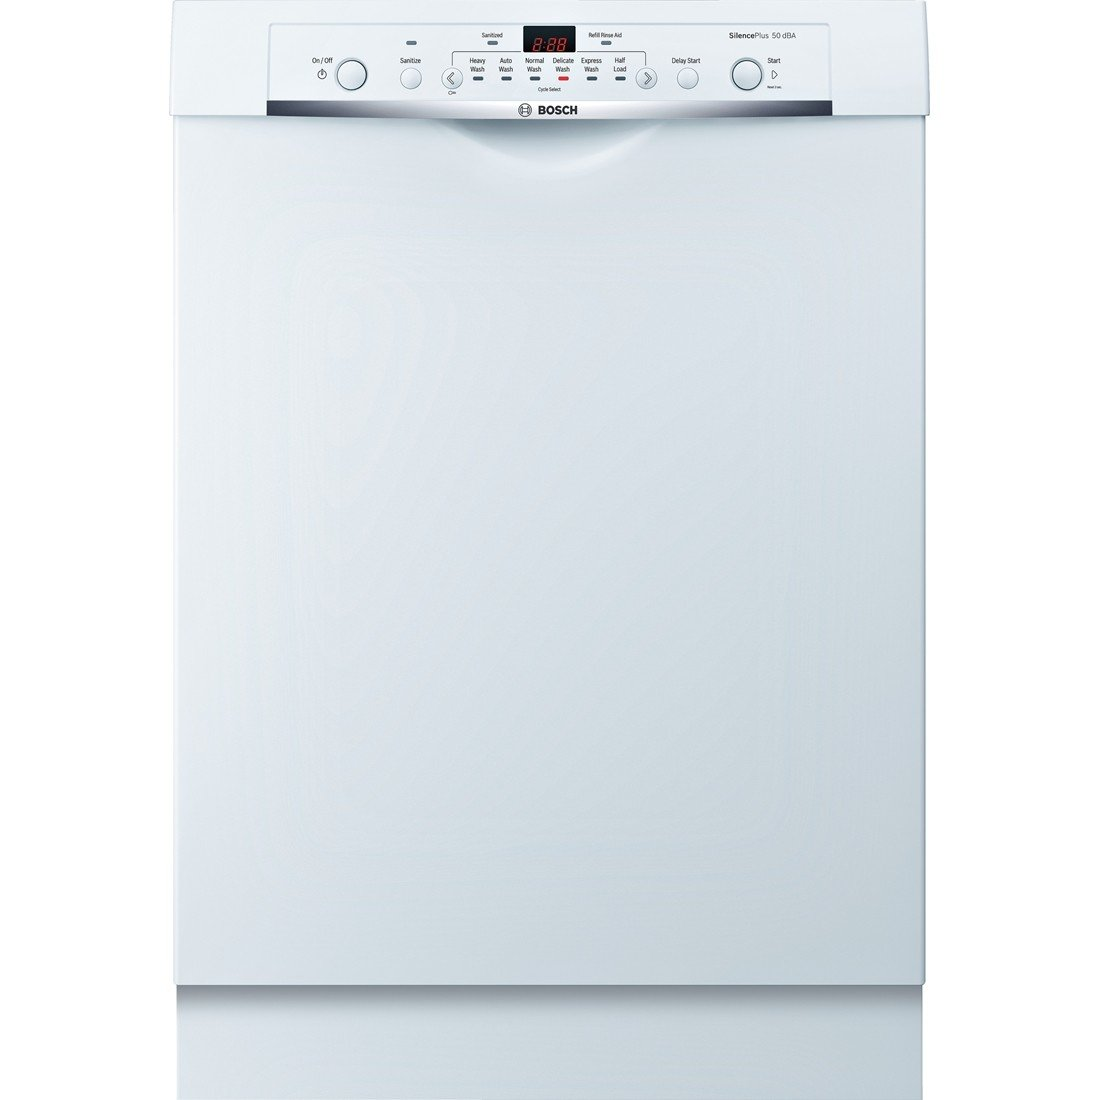 Bosch SHE3AR72UC Ascenta 24' White Full Console Dishwasher - Energy Star